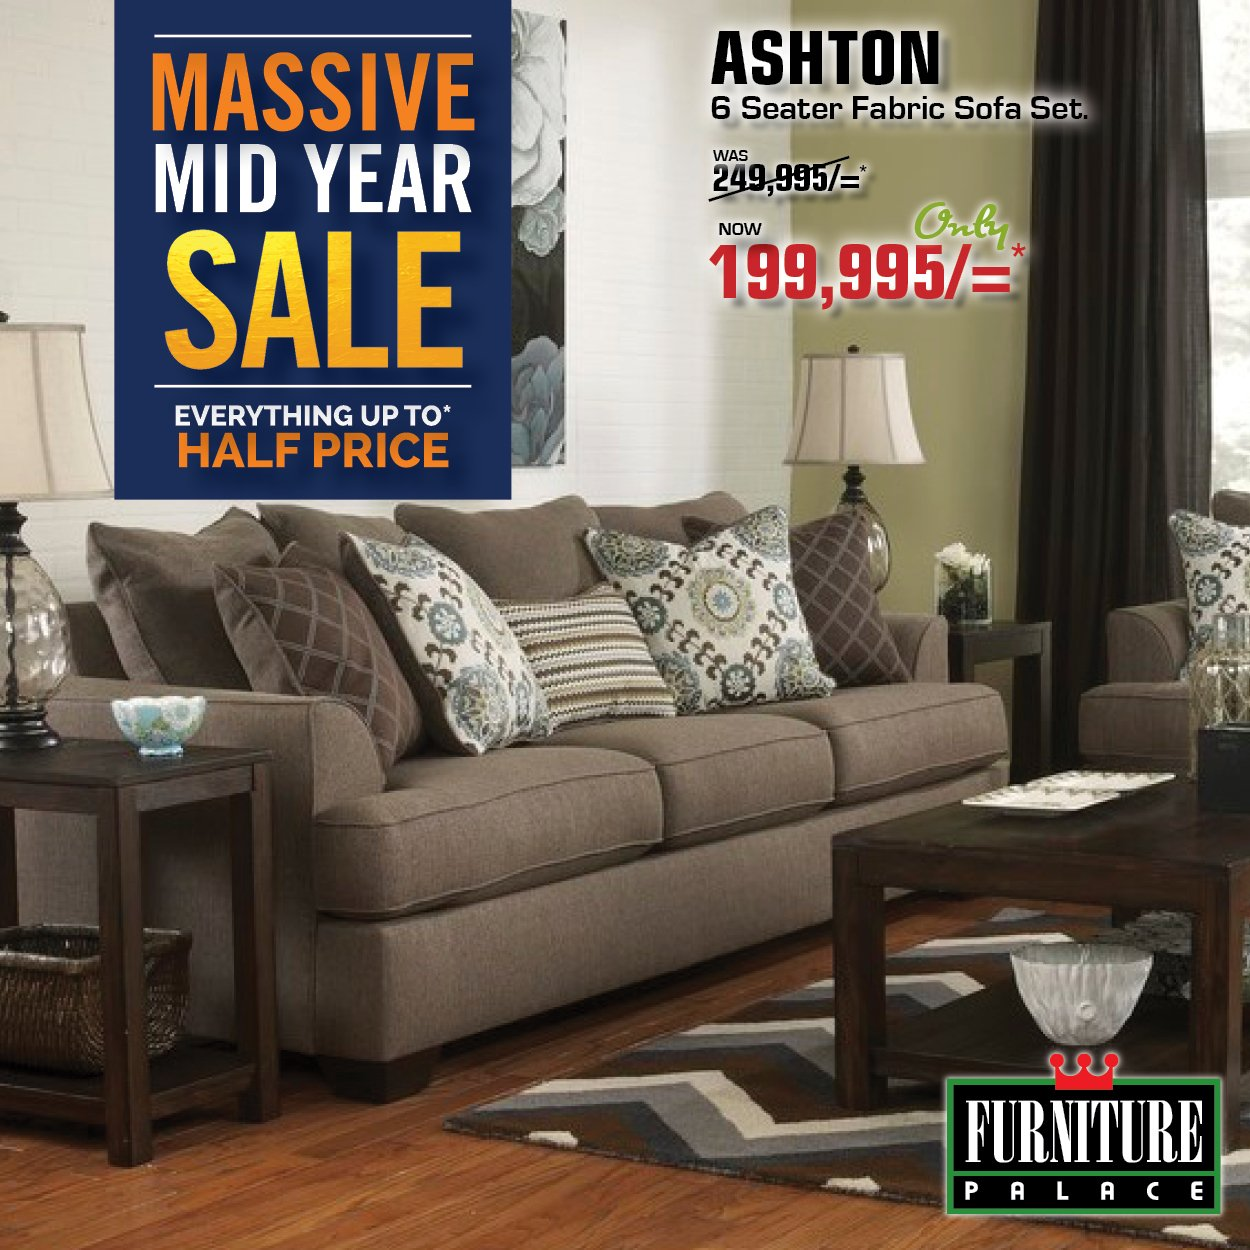 """Furniture Palace Ltd on Twitter: """"The MASSIVE MID YEAR SALE🔥 on"""